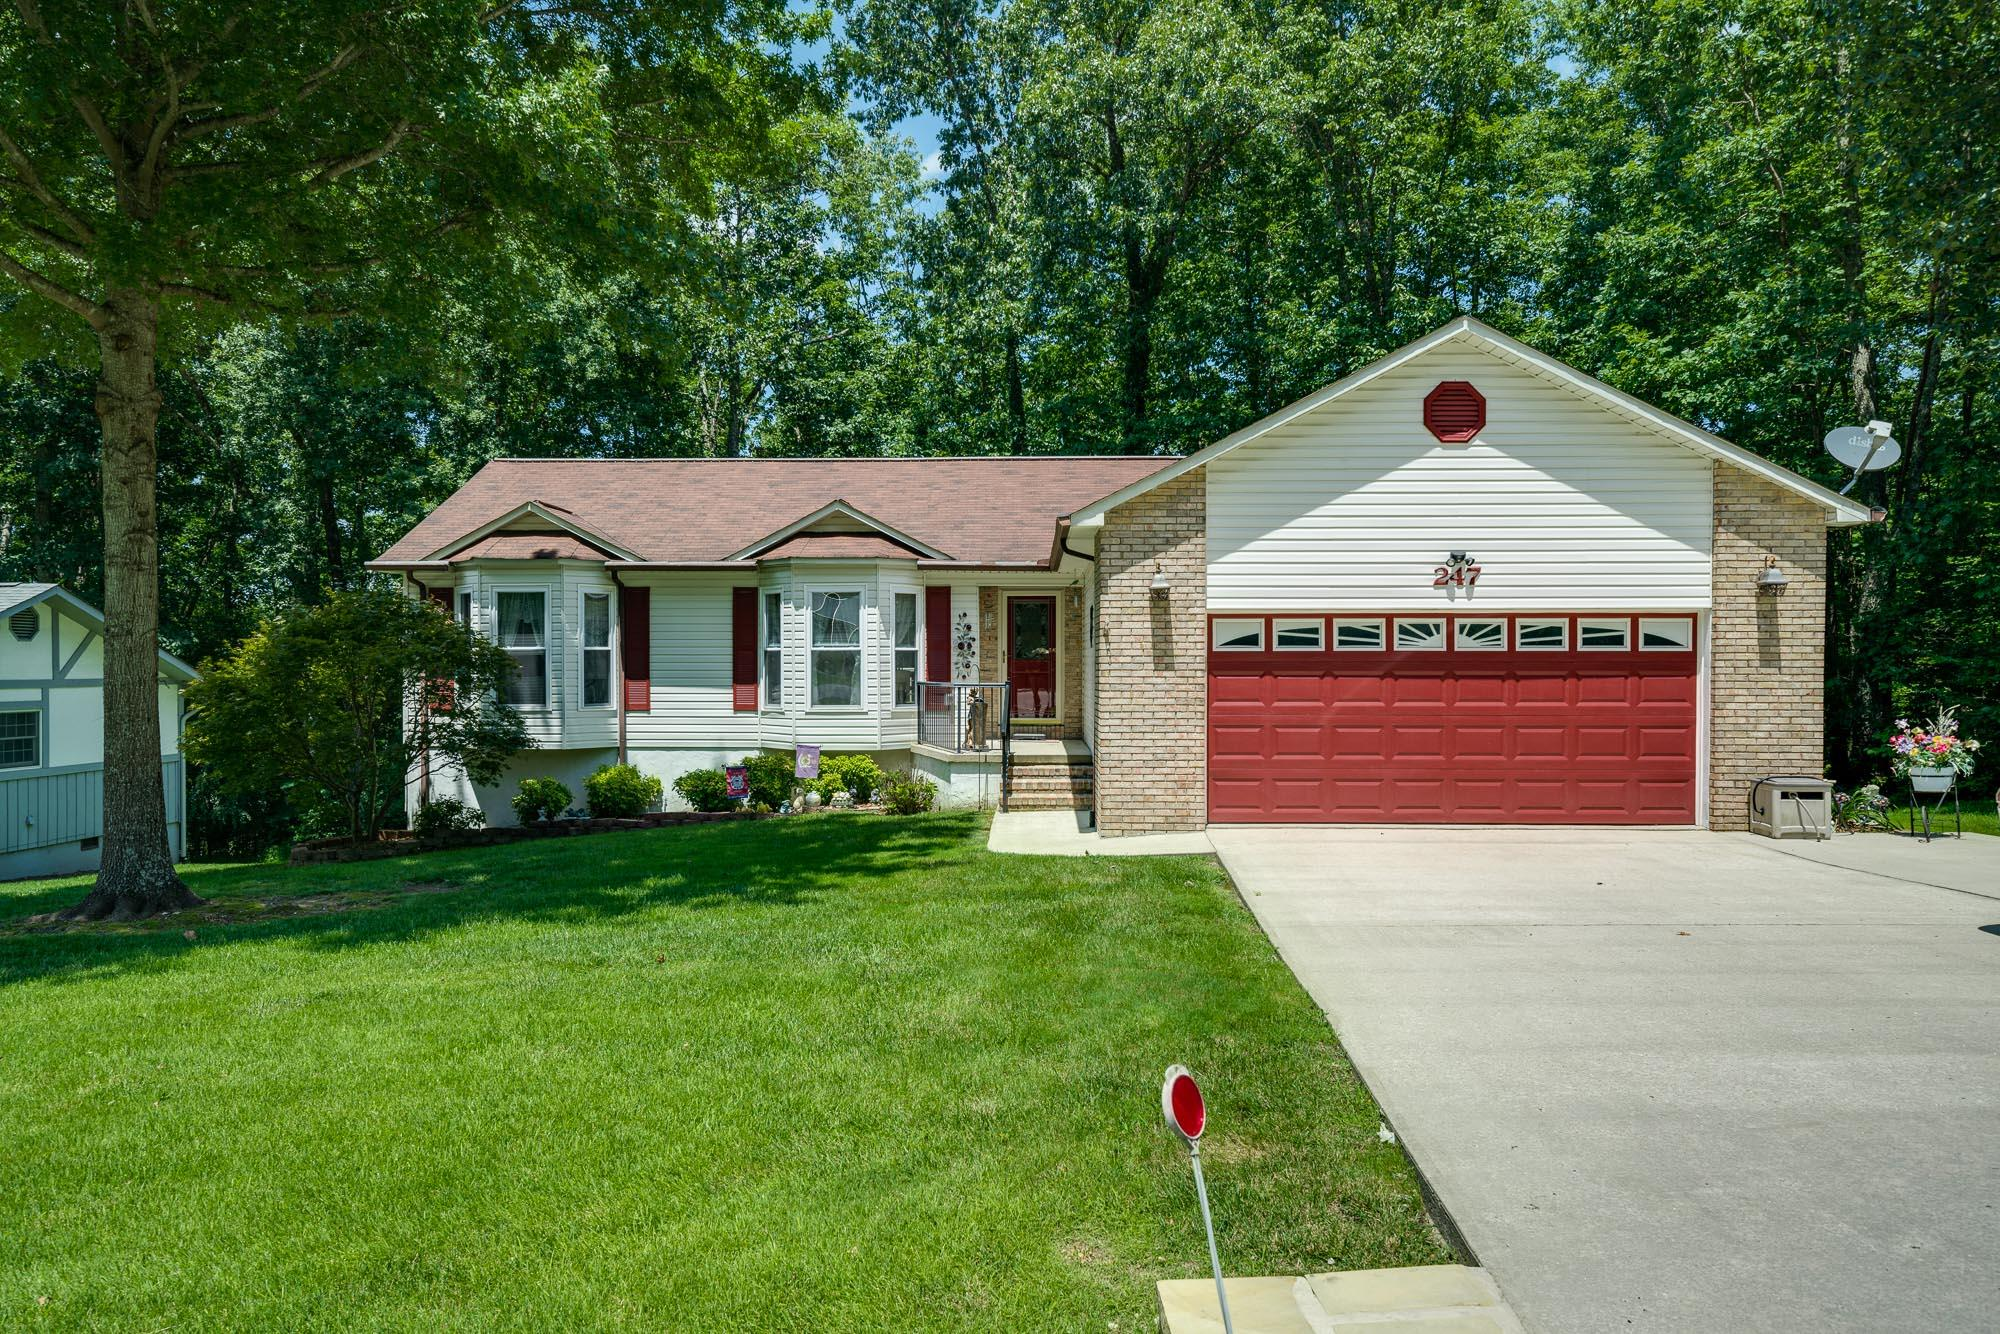 247 Lakeview Dr, Crossville, TN 38558 - Crossville, TN real estate listing